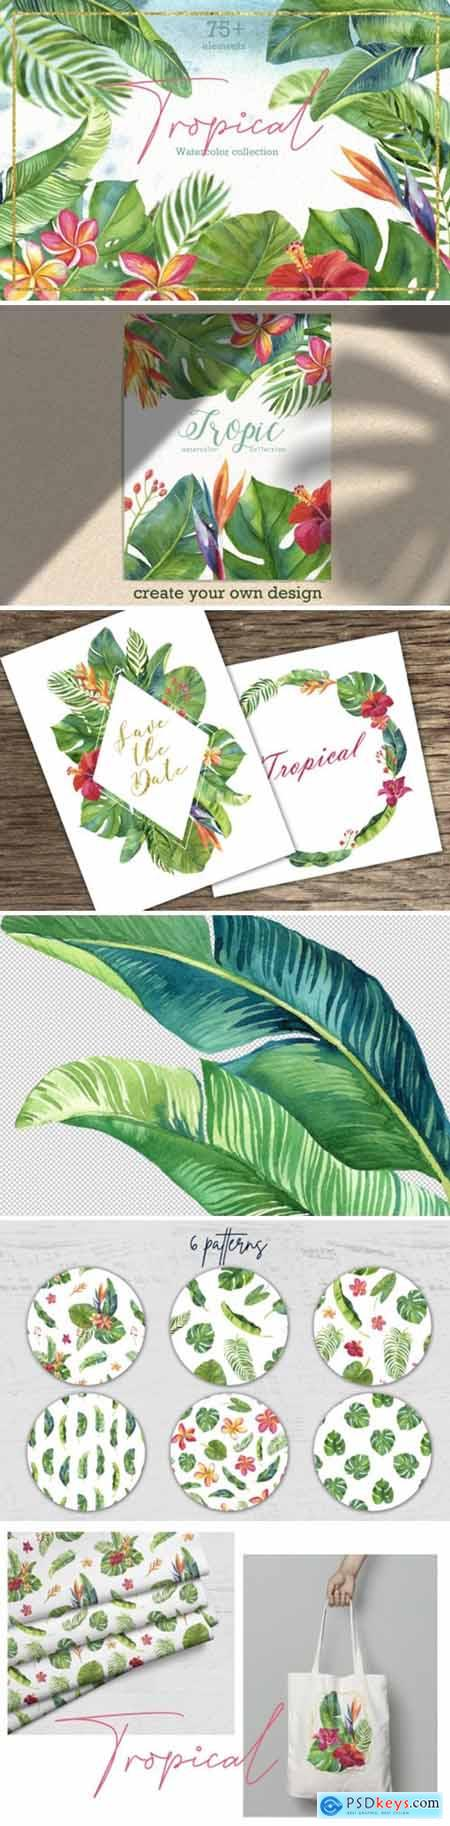 Tropic Leaves & Flowers Watercolor Set 2439196